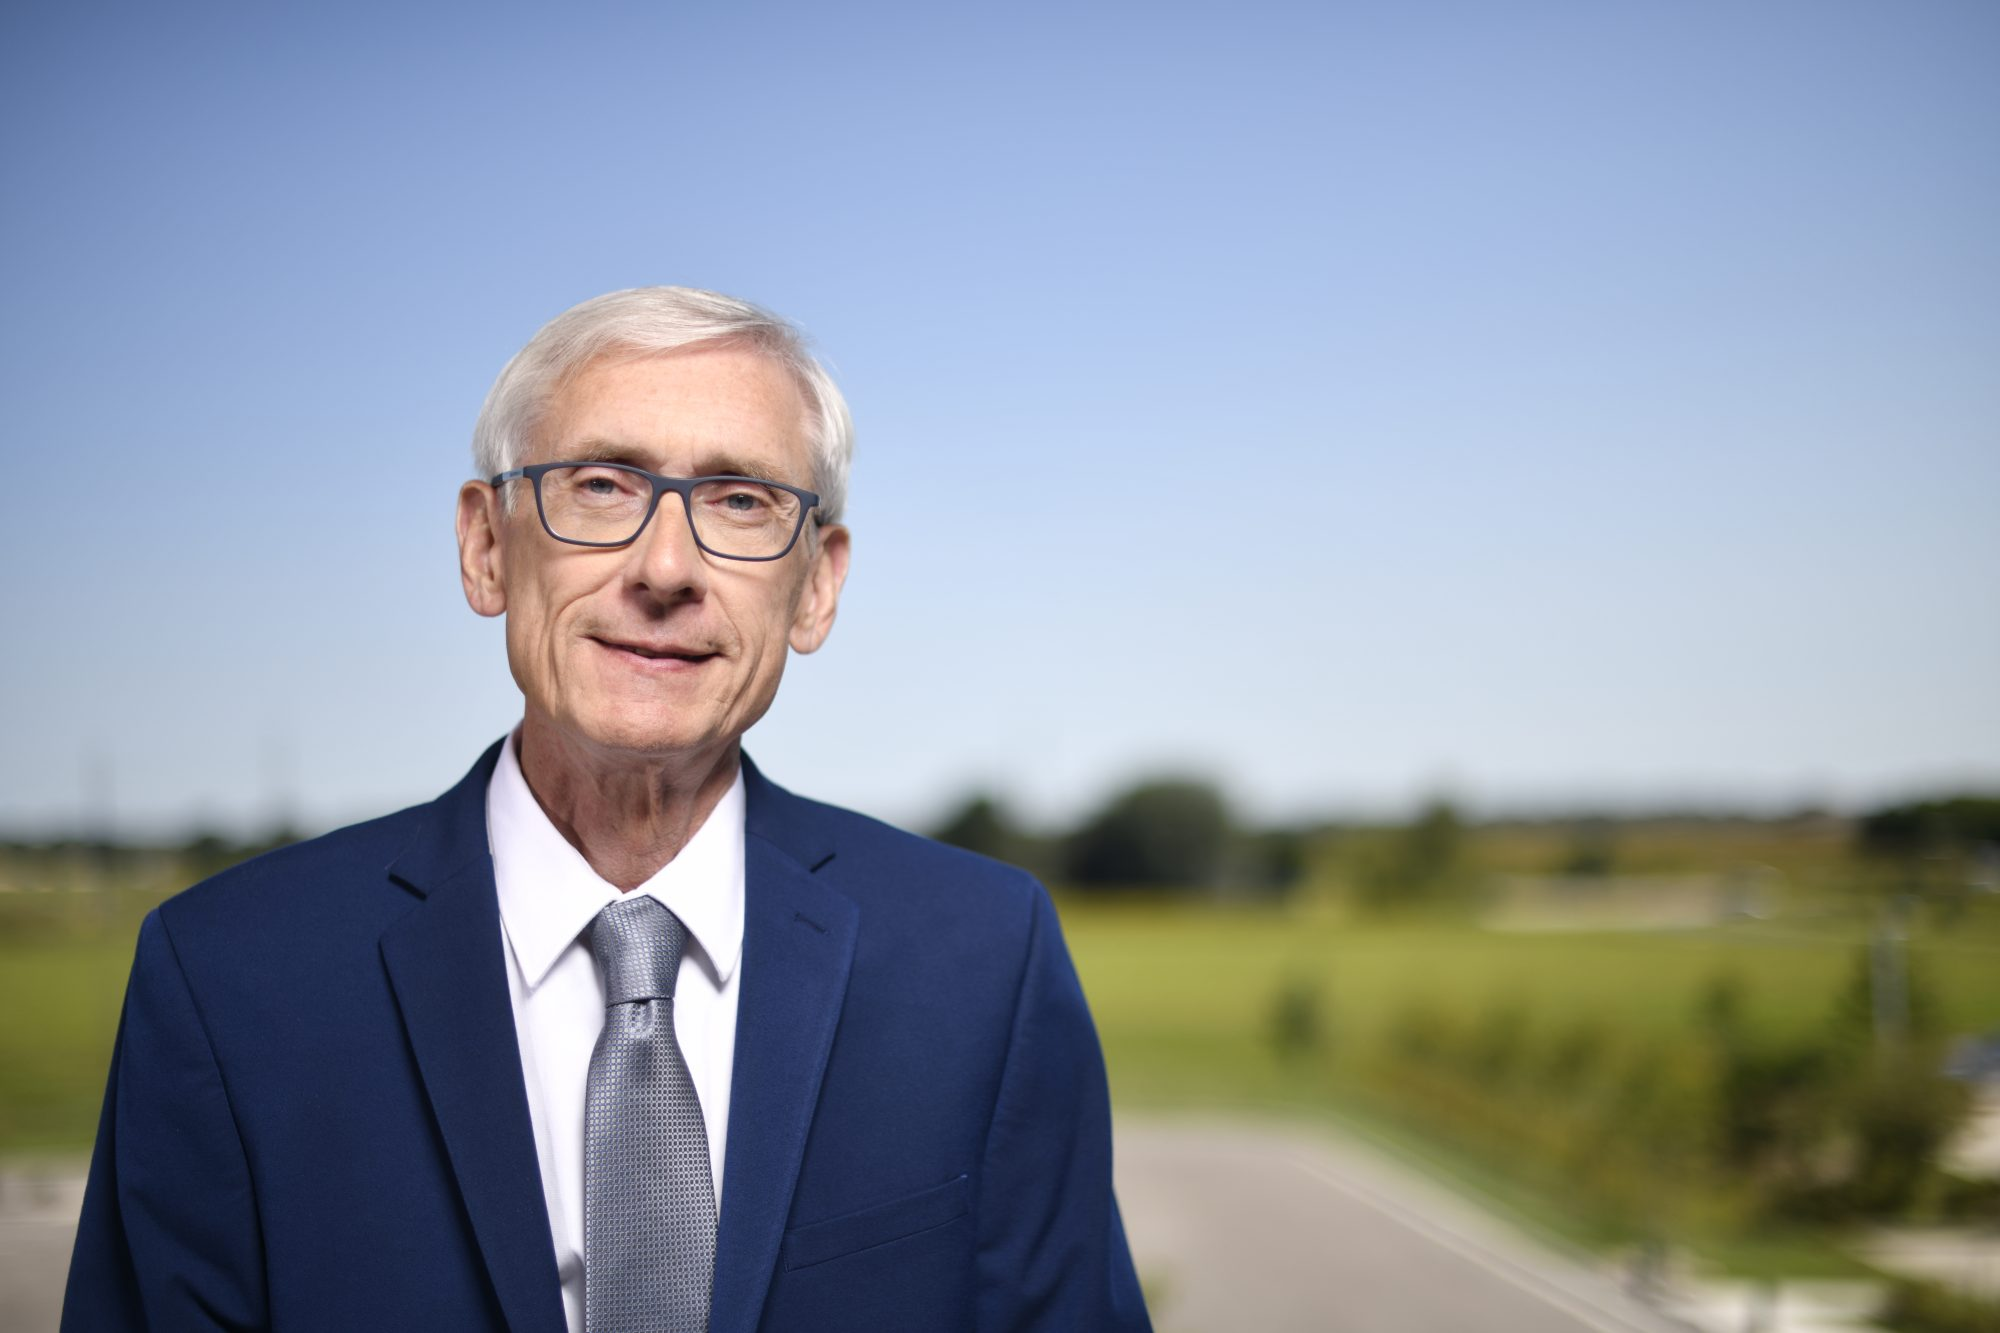 Gov. Evers Announces Wisconsin has Shipped One Millionth N95 Mask through State Distribution System